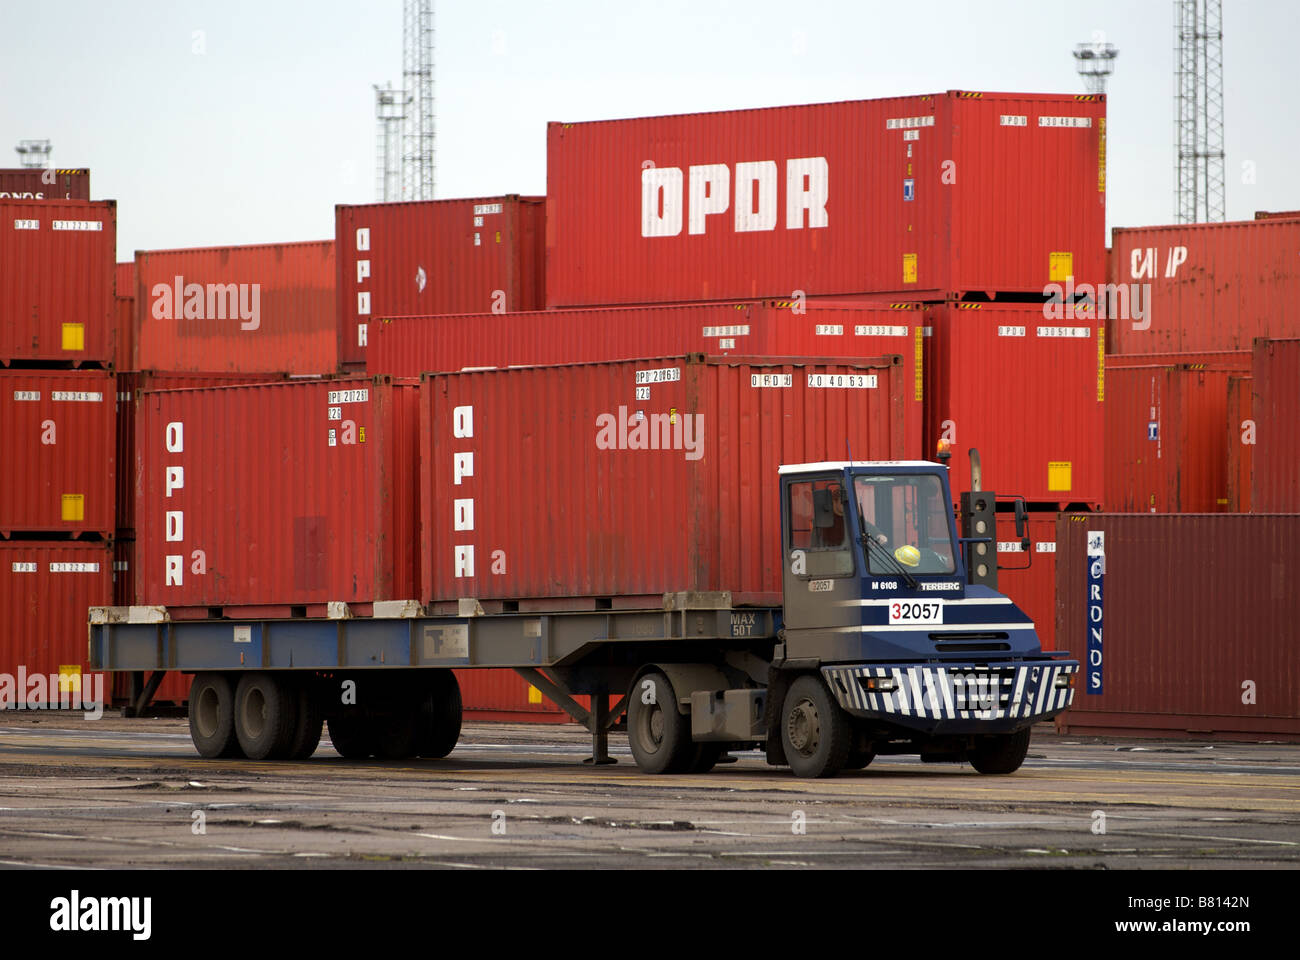 Container Oldenburg Oldenburg Portugiesische Stock Photos Oldenburg Portugiesische